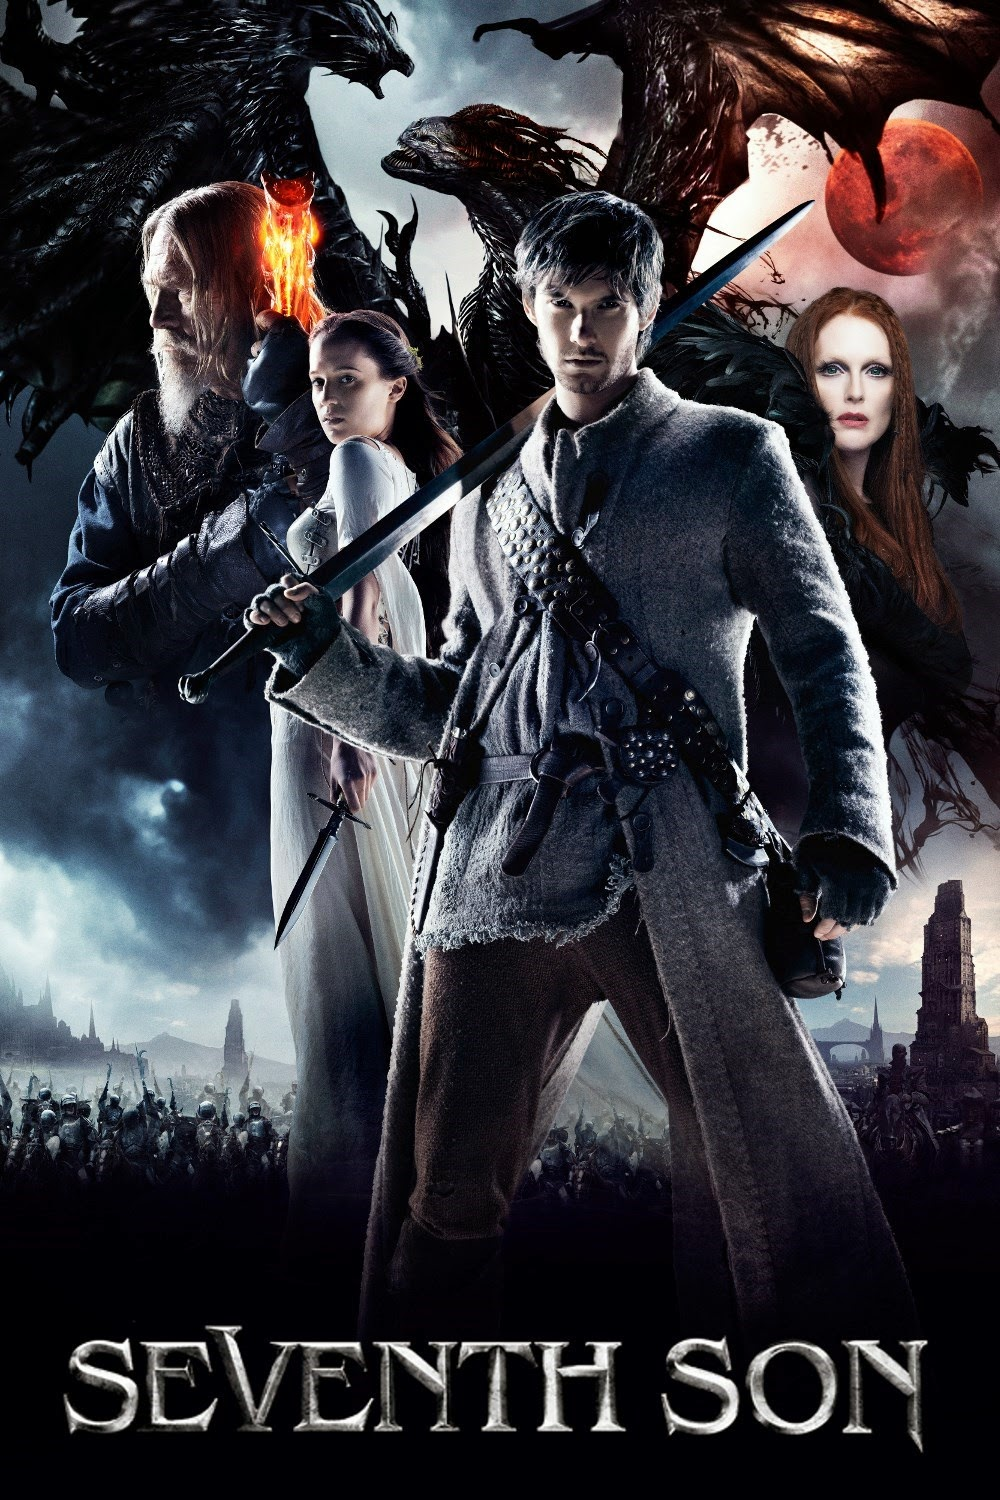 Seventh Son 2014 - Full (HD) - PubFilm.Com - Watch Movie and TV Show ...